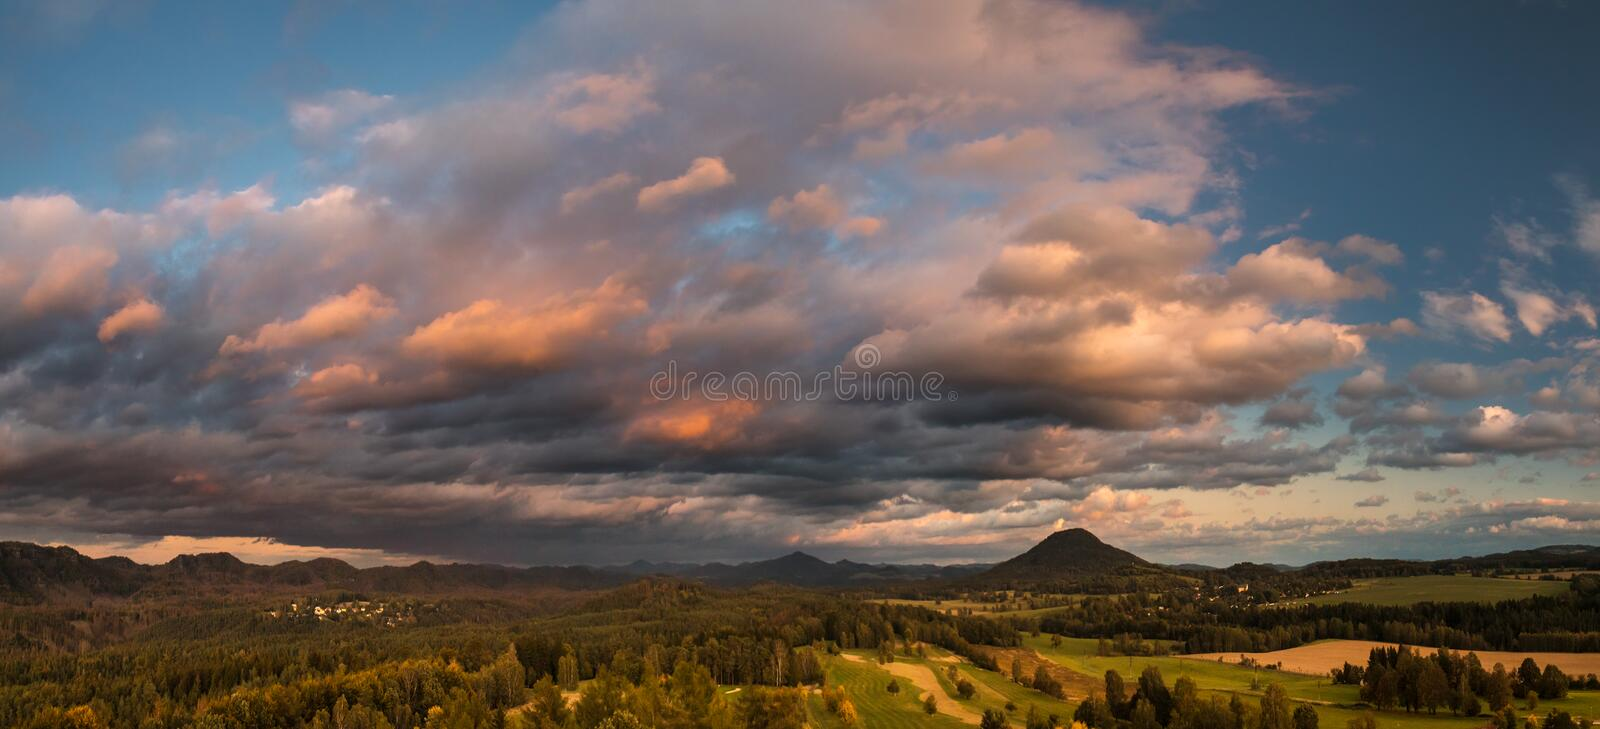 Autumn landscape at sunset - mountains, forests and dramatic clouds illuminated by the setting sun royalty free stock image